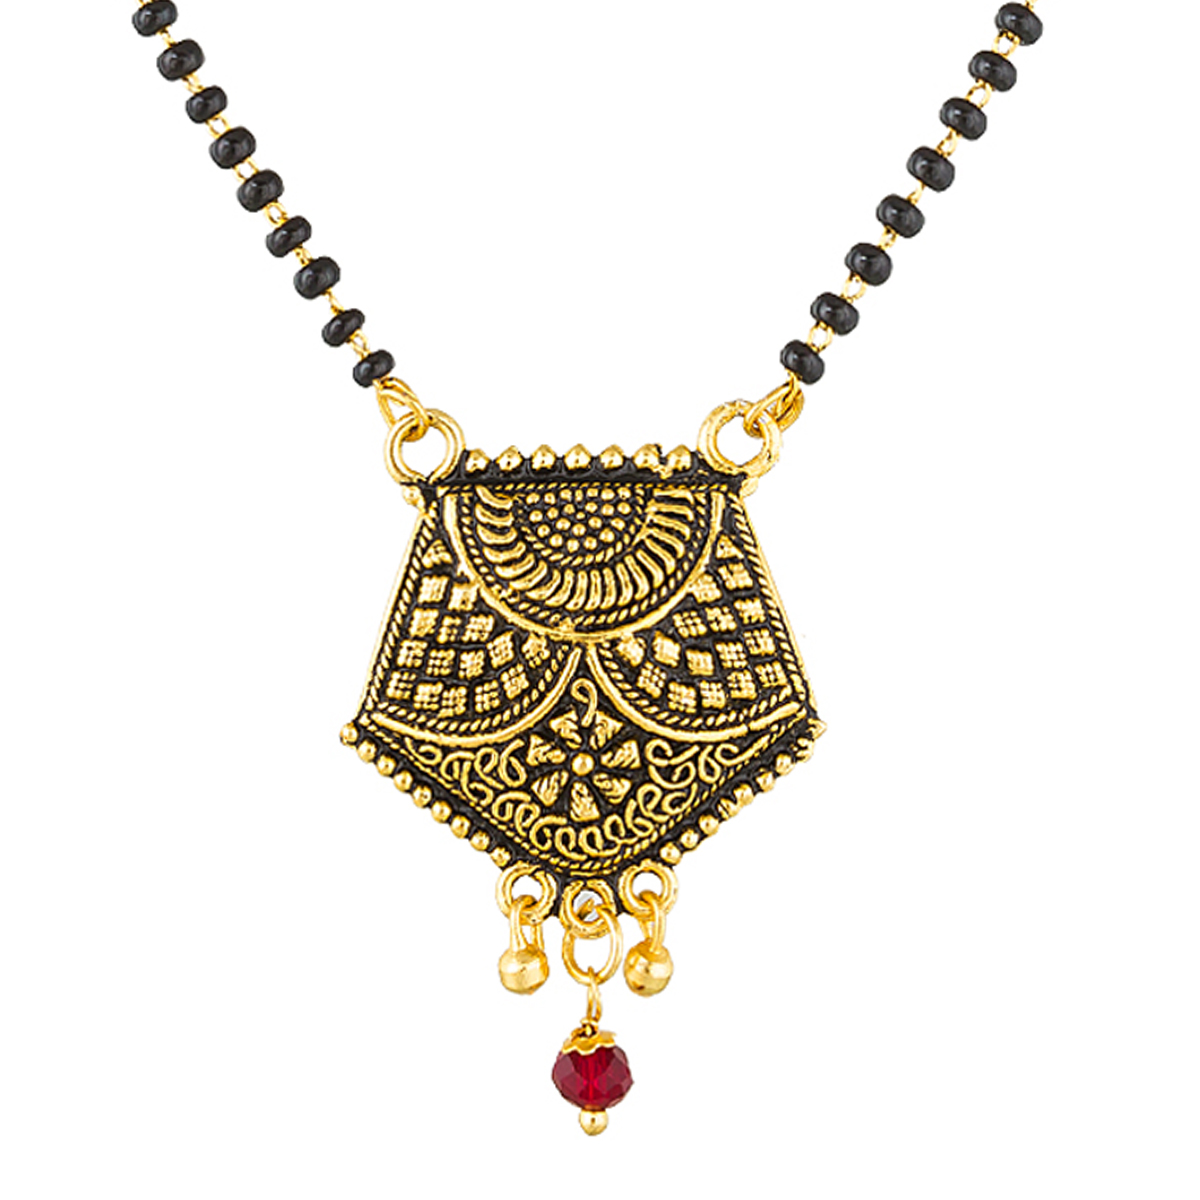 Mesmerising Golden Colored Stone Work Mix Metal Mangalsutra